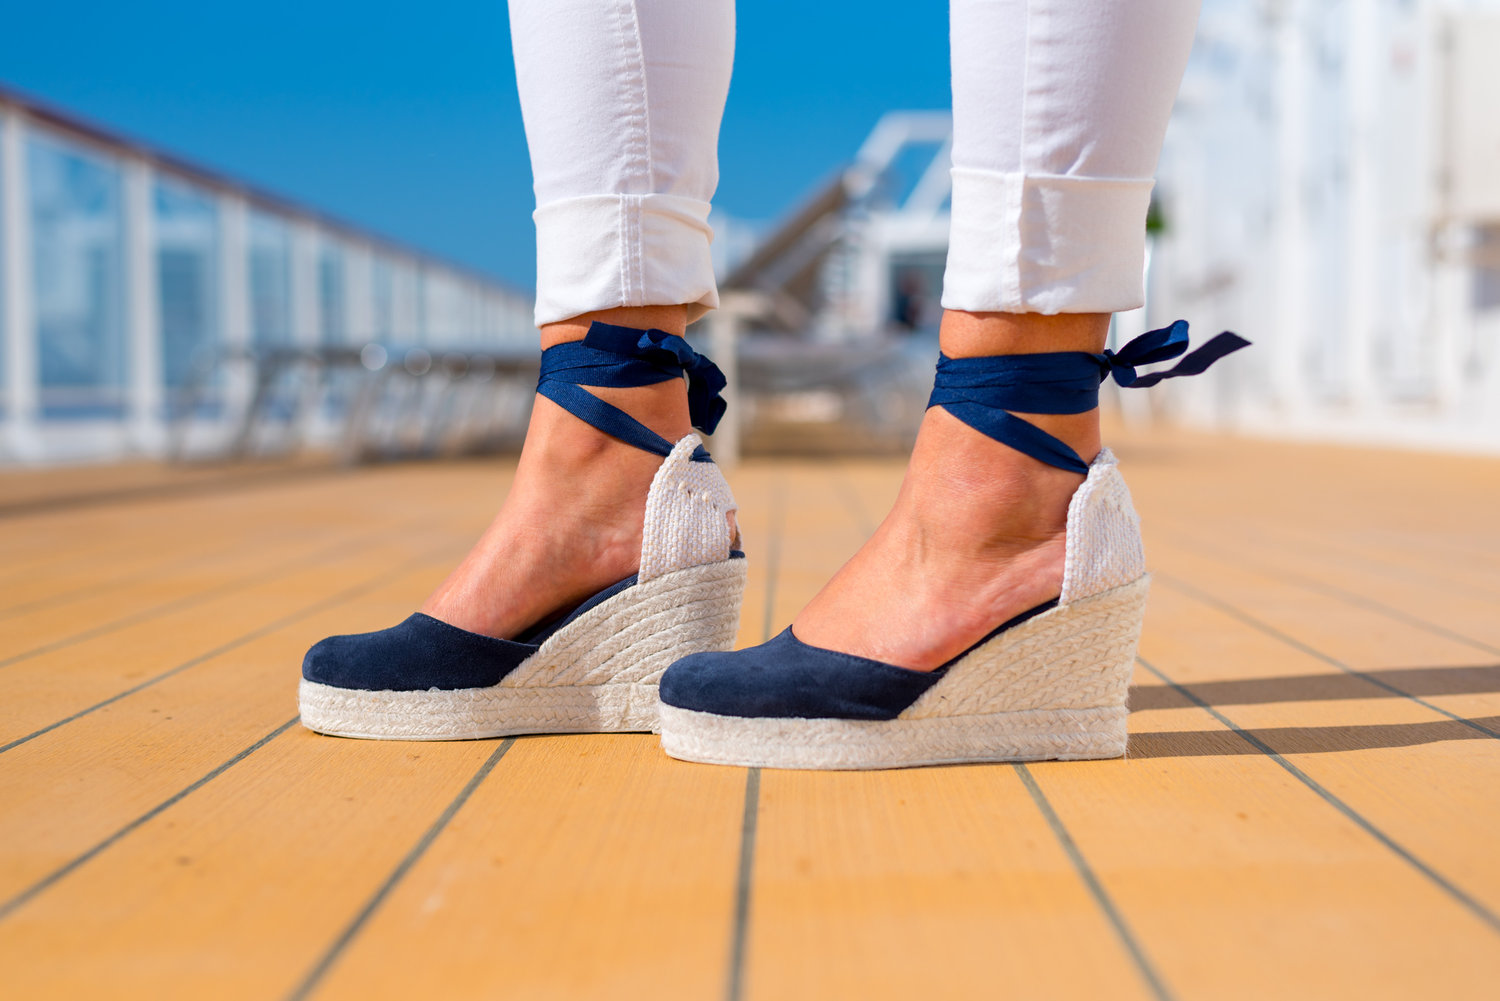 4dab9990321b Manebi Espedrilles  Are These the Perfect Summer Shoes  — No ...